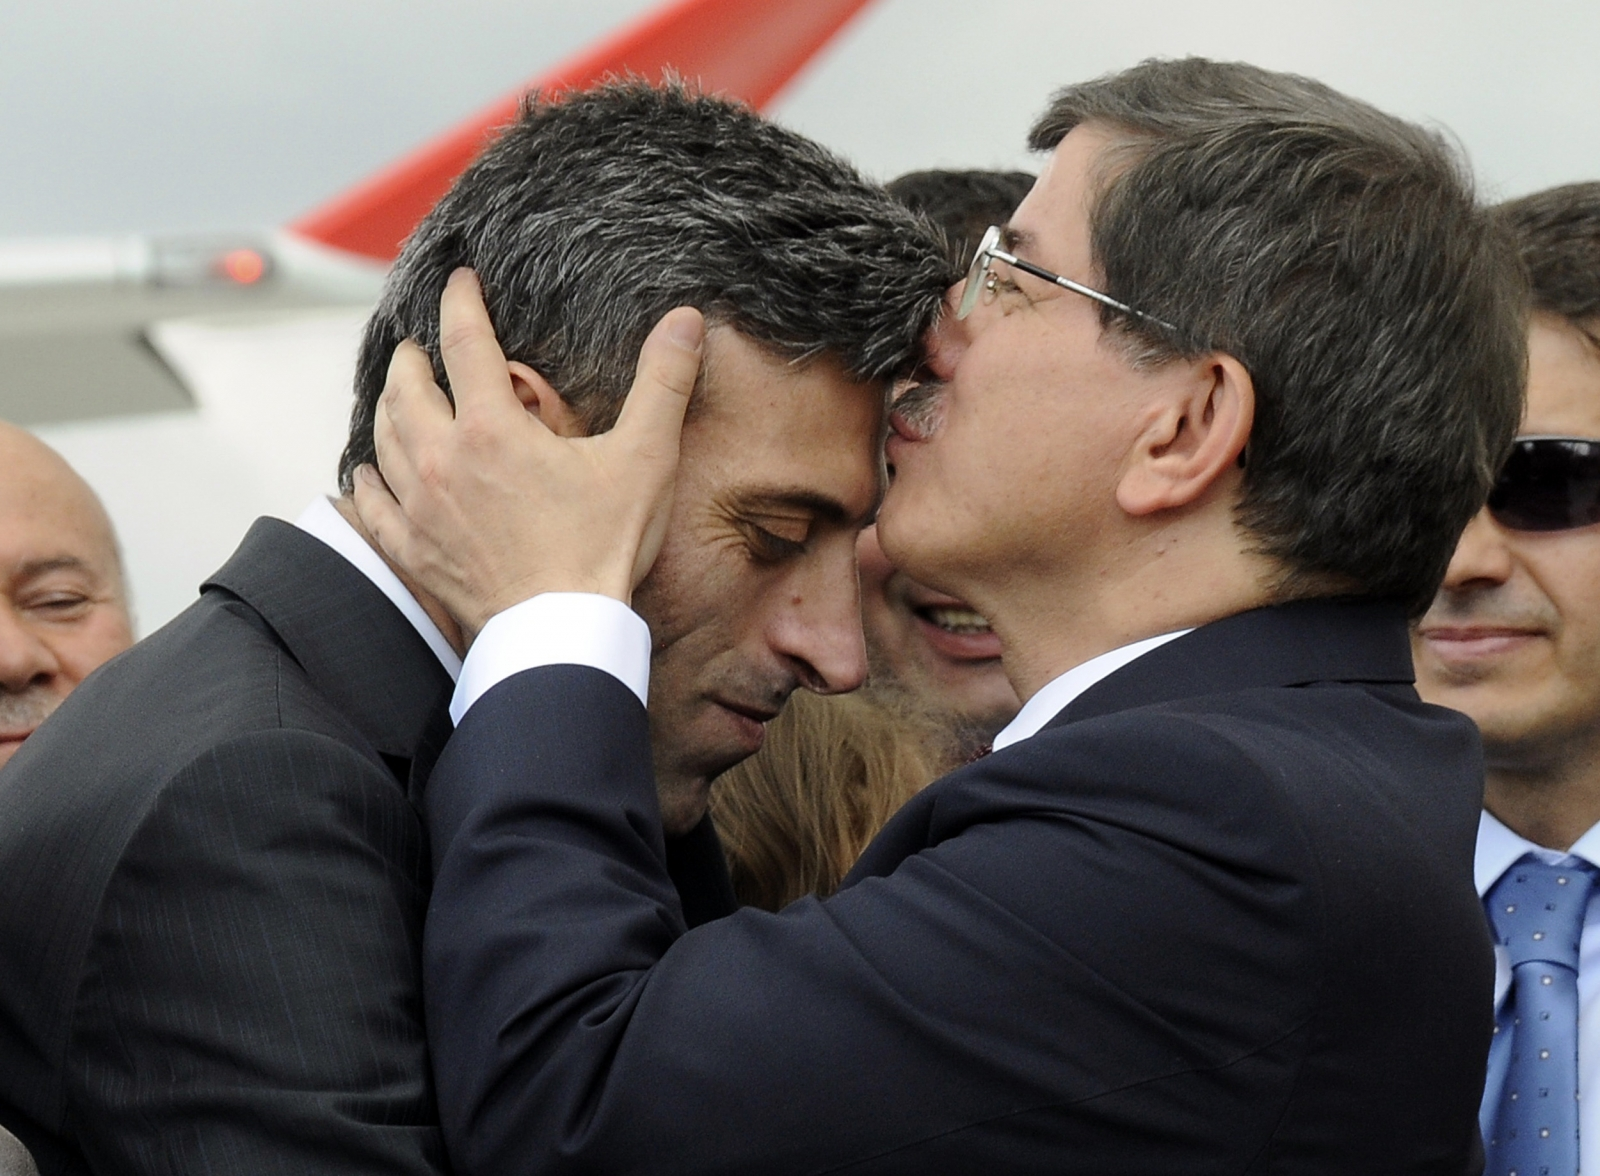 Turkish Prime Minister Ahmet Davutoglu (R) kisses Turkish Consul General of Mosul Ozturk Yilmaz on the forehead